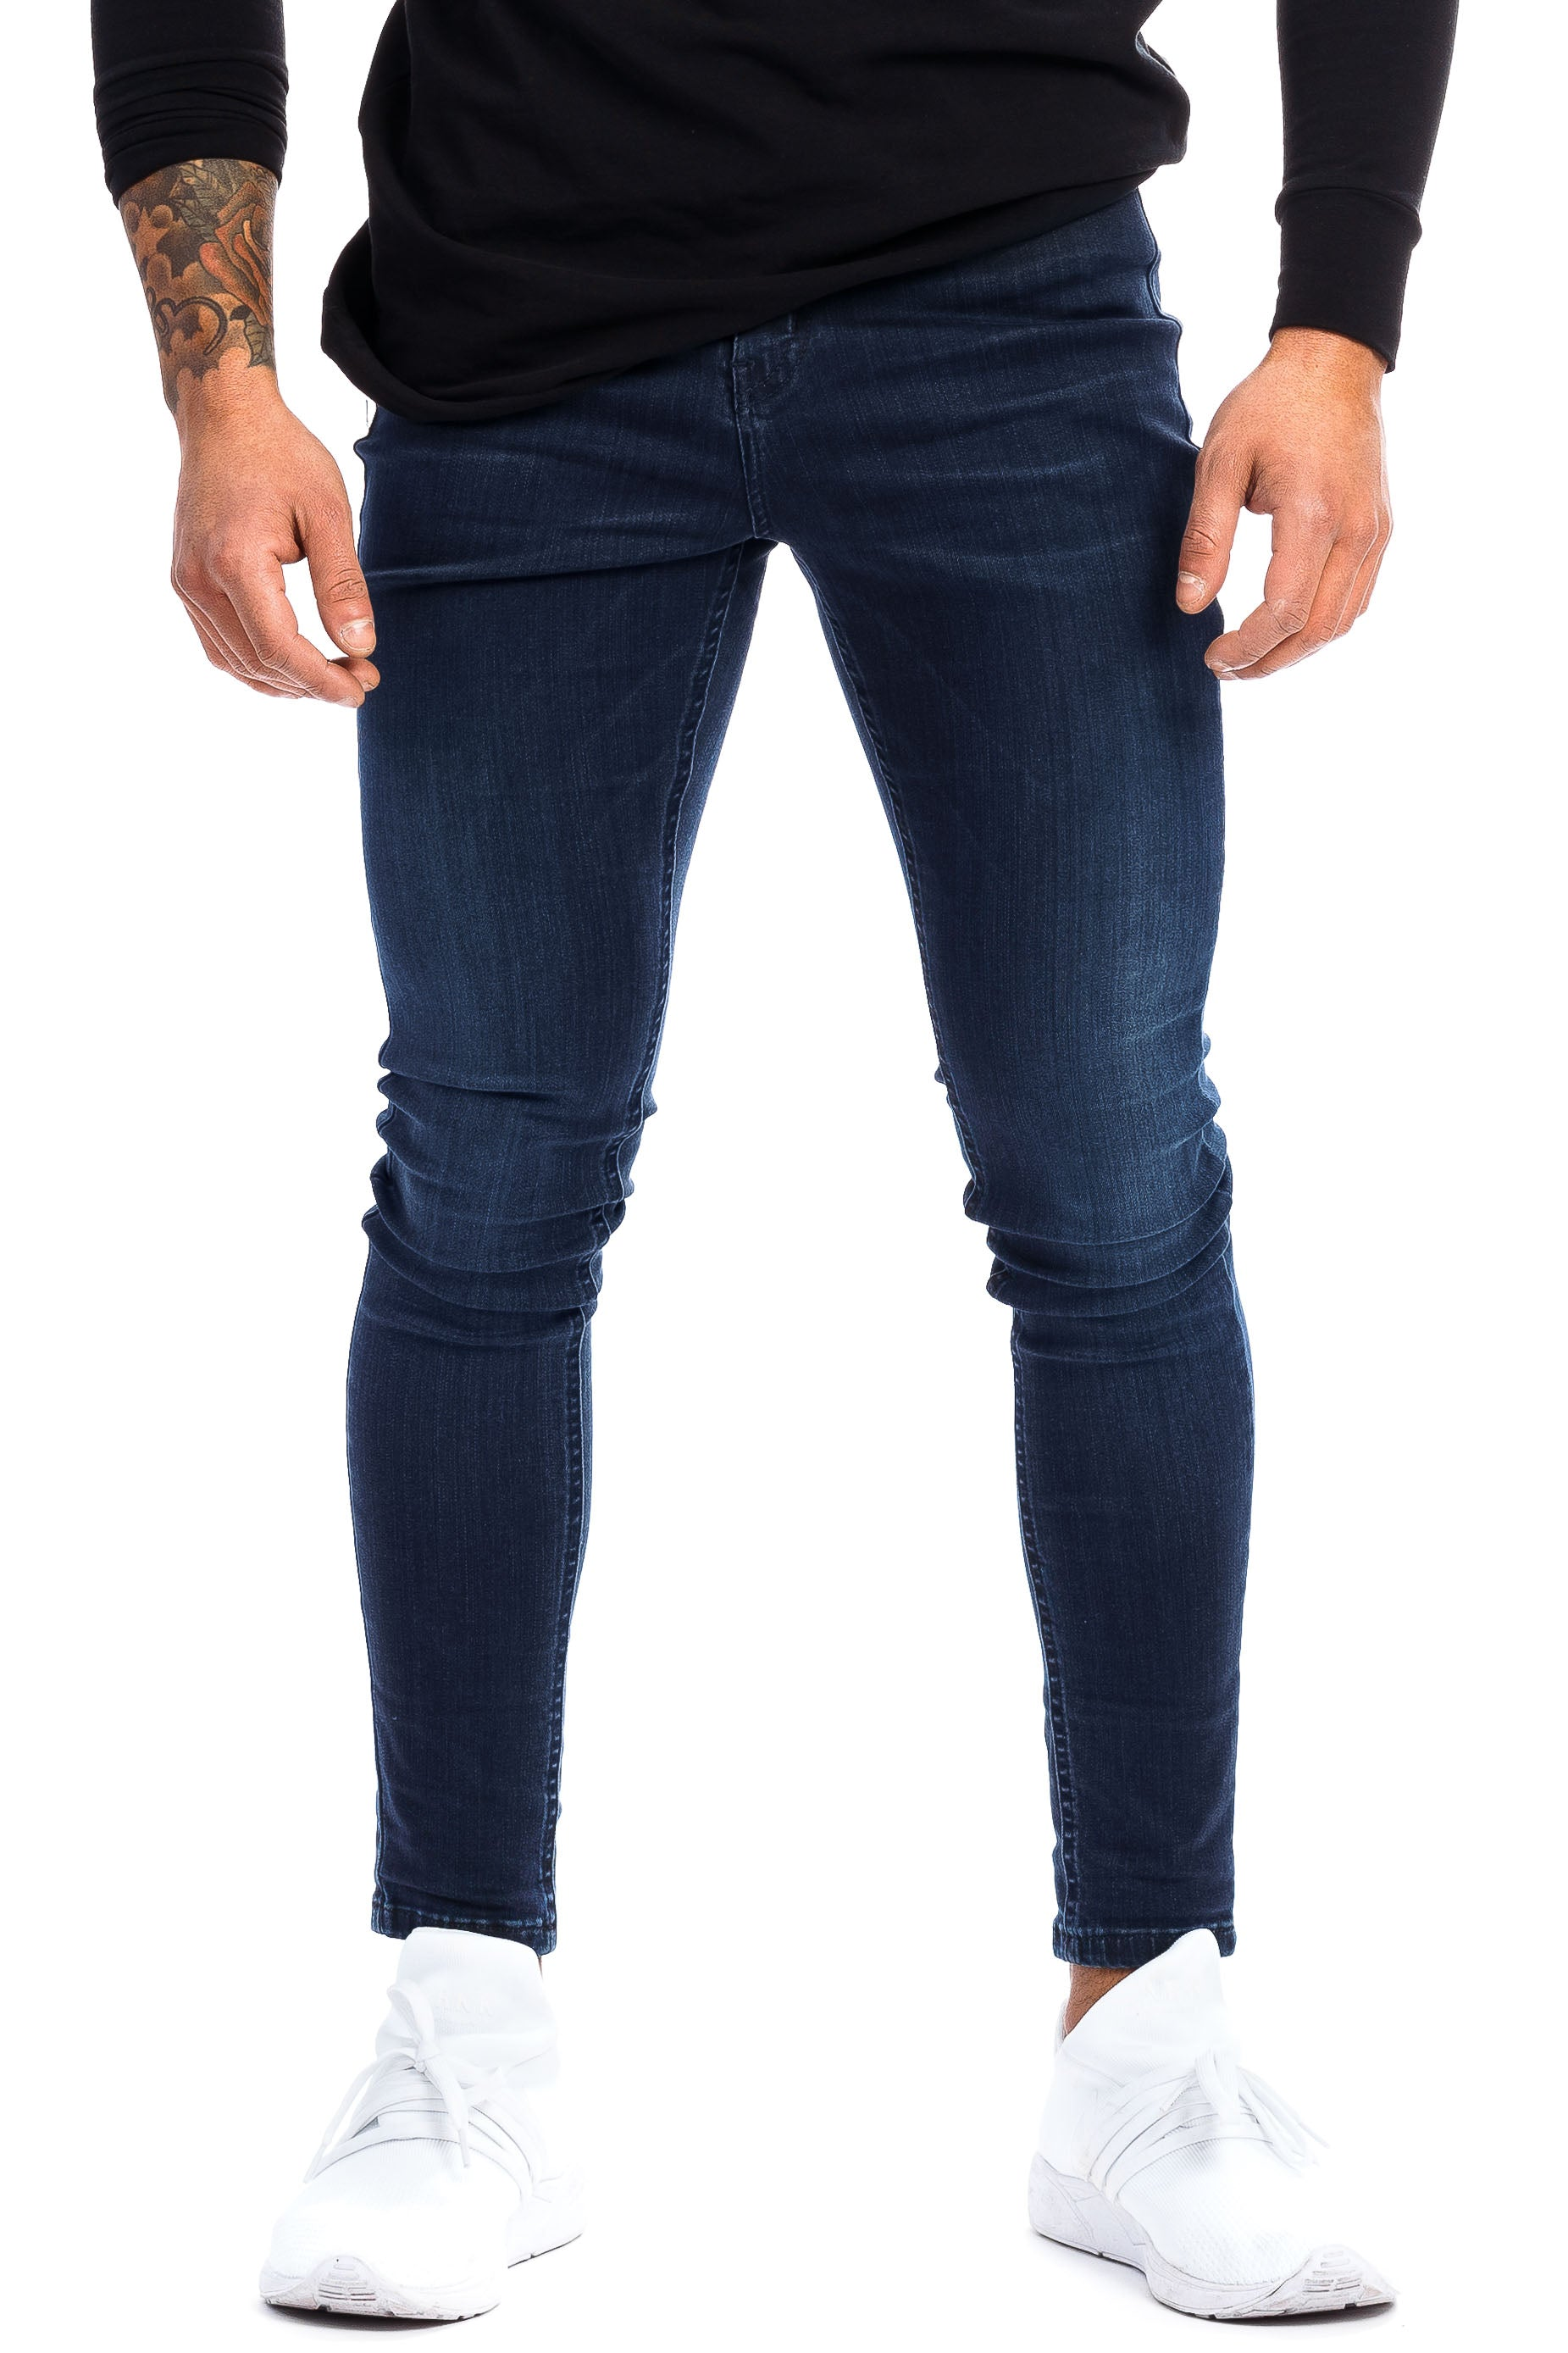 Mens Regular Fitjeans - Blue shade